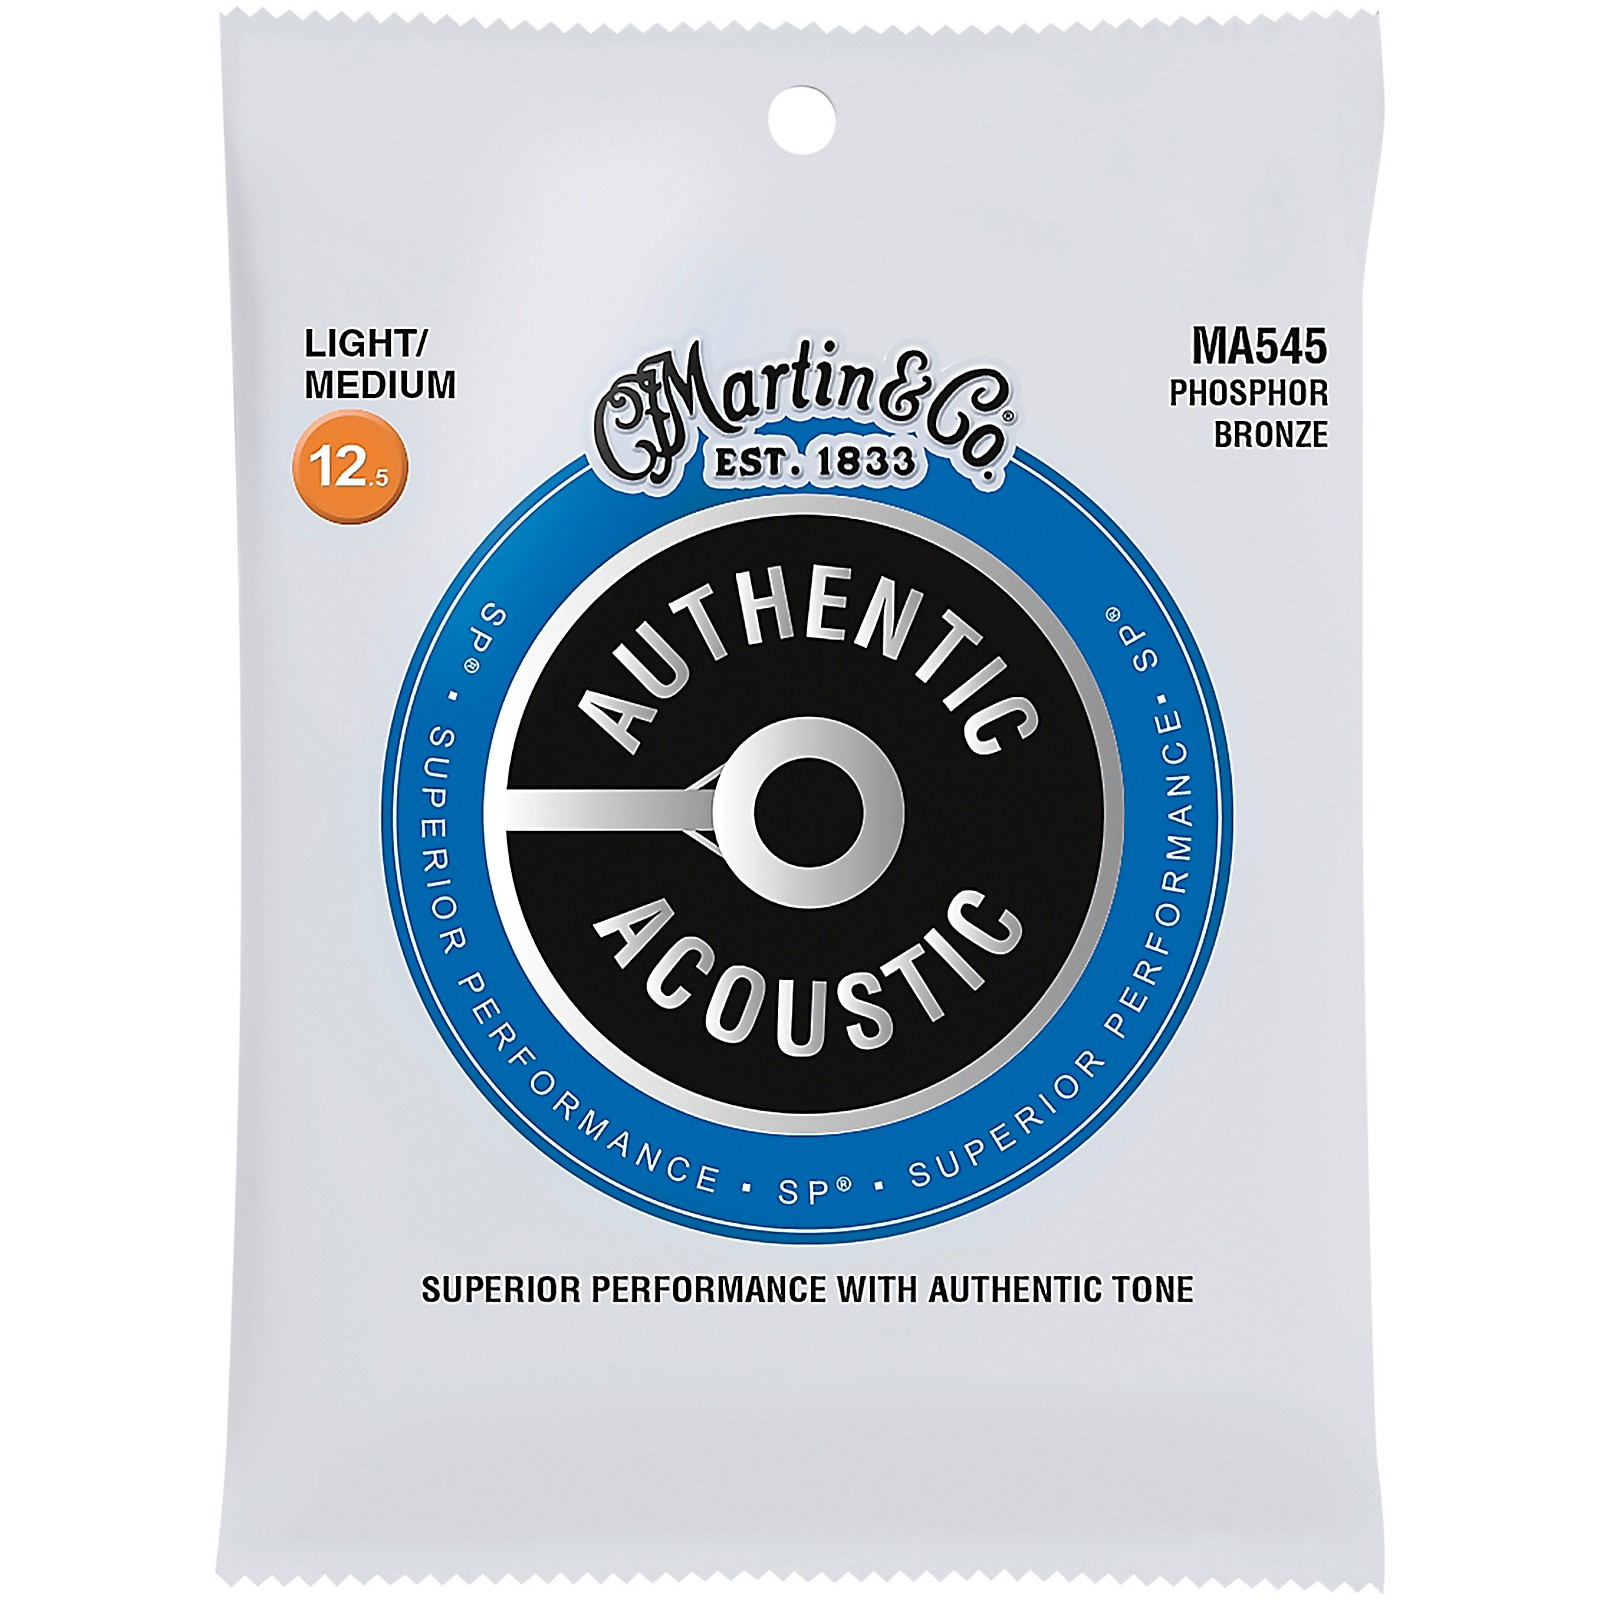 Martin MA545 SP Phosphor Bronze Light/Medium Authentic Acoustic Guitar Strings